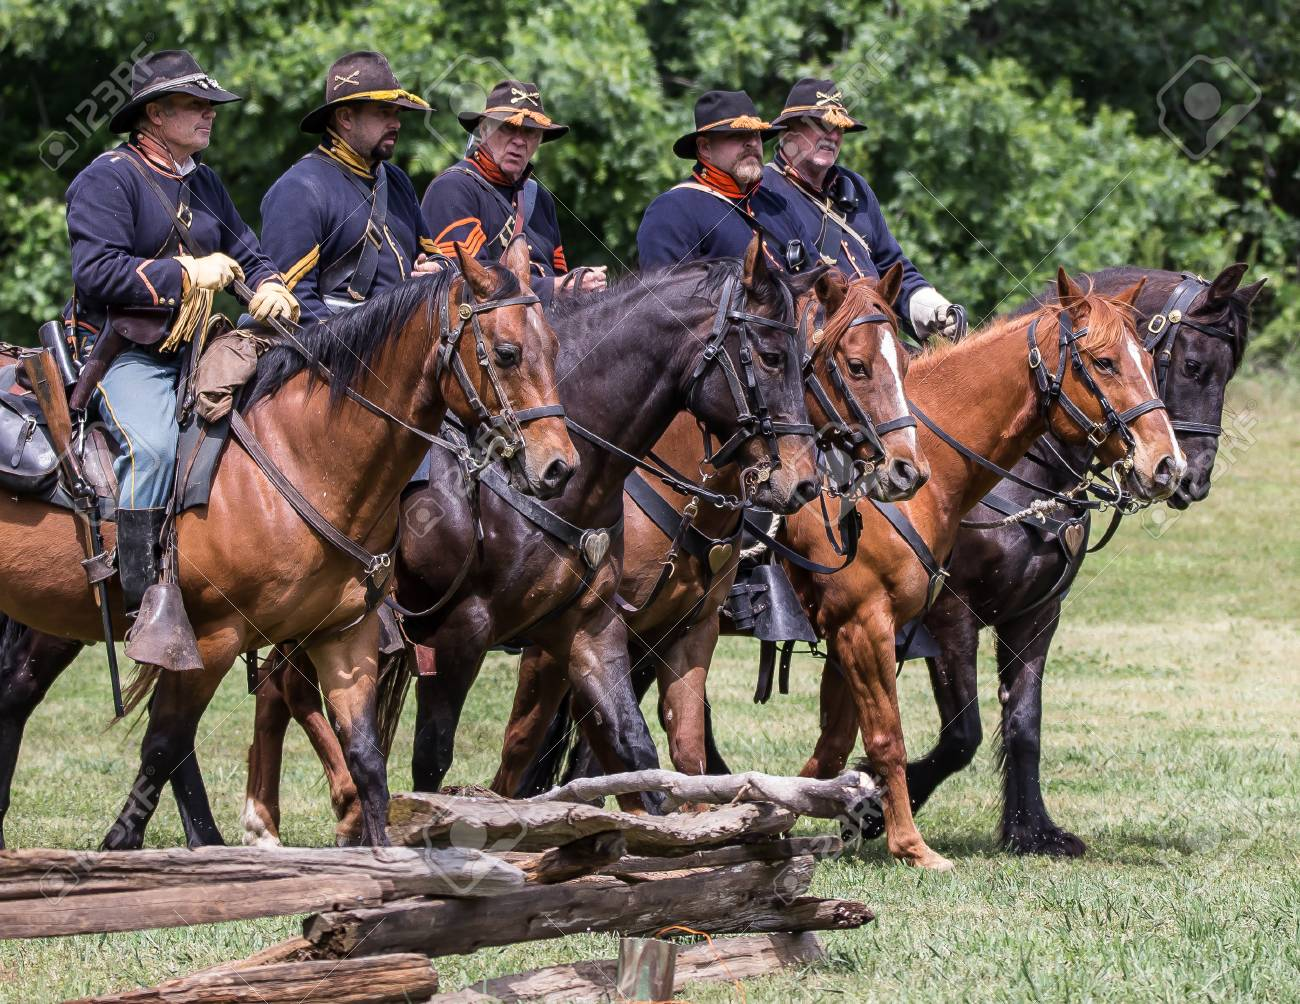 Civil War reenactment action at Dog Island, Red Bluff, California